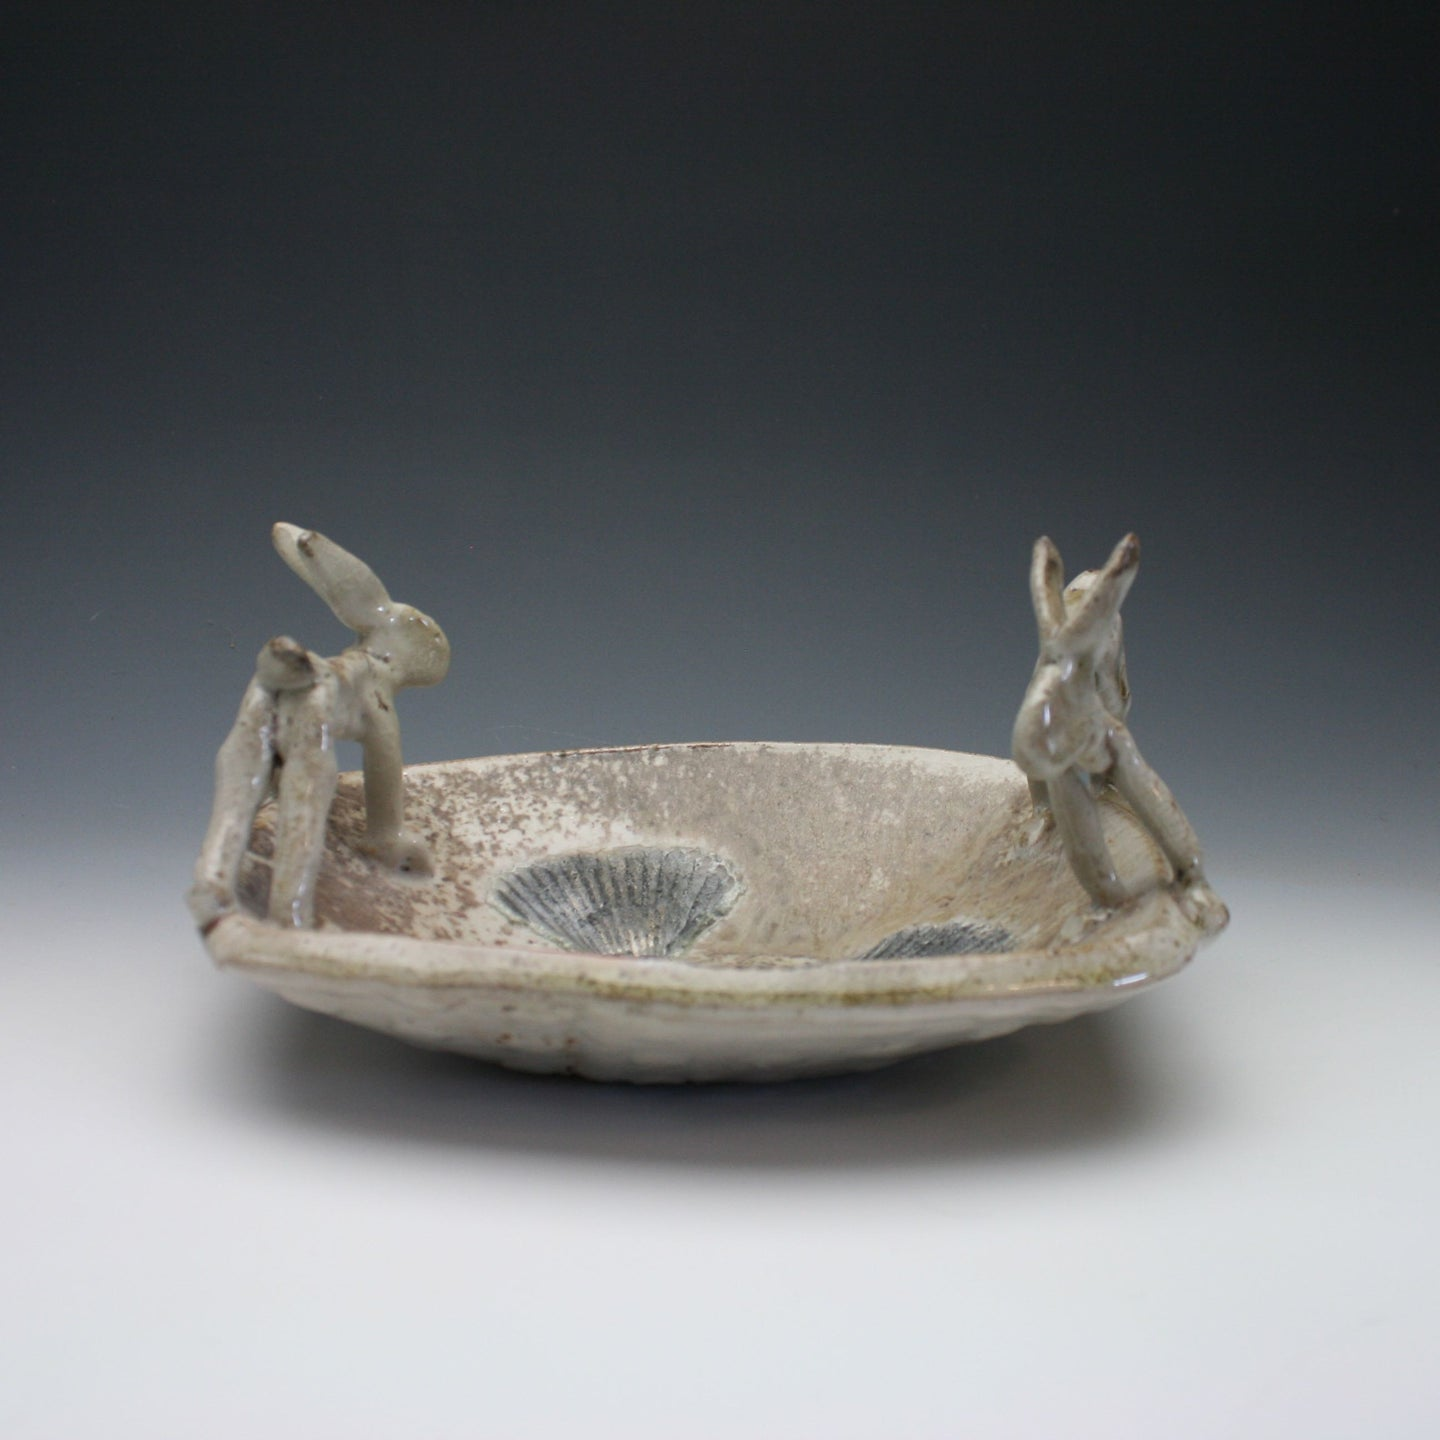 Wood Fired Rabbit Tray A015